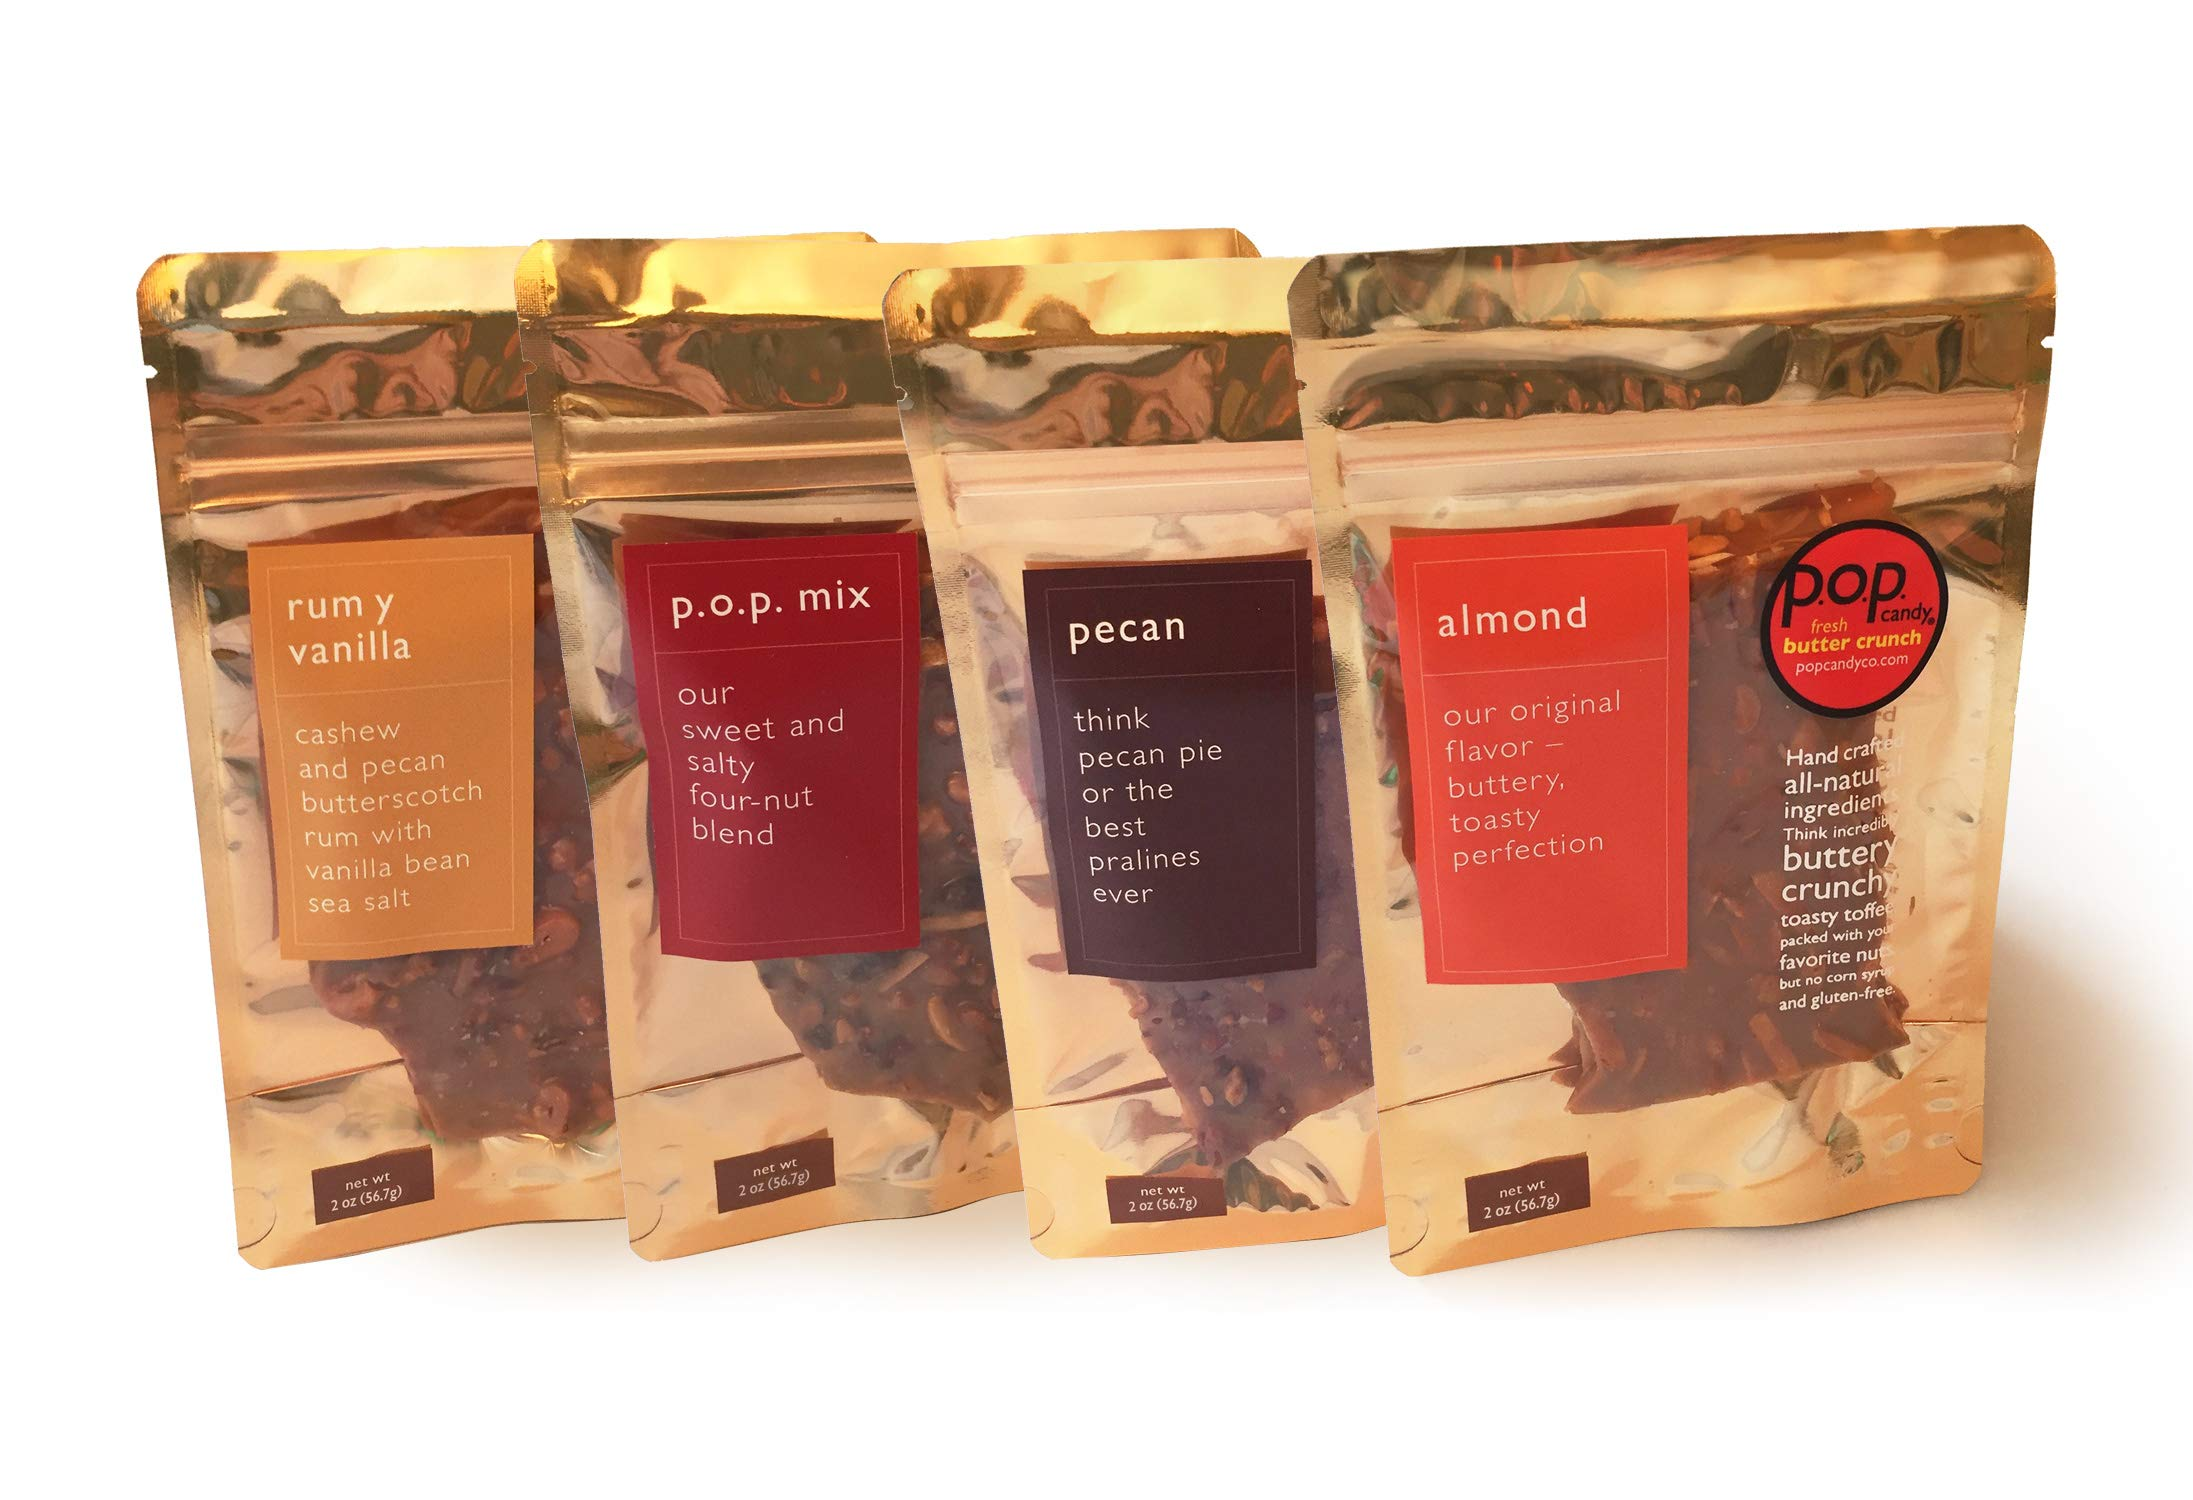 Butter Toffee Candy Classic Assortment (Pecan, Almond, Mix and Rum Y Vanilla), 2 Ounces Each | All-Natural, Corn Syrup-Free and Gluten-Free Gourmet Candy Brittle | Pop Candy by p.o.p. candy co.